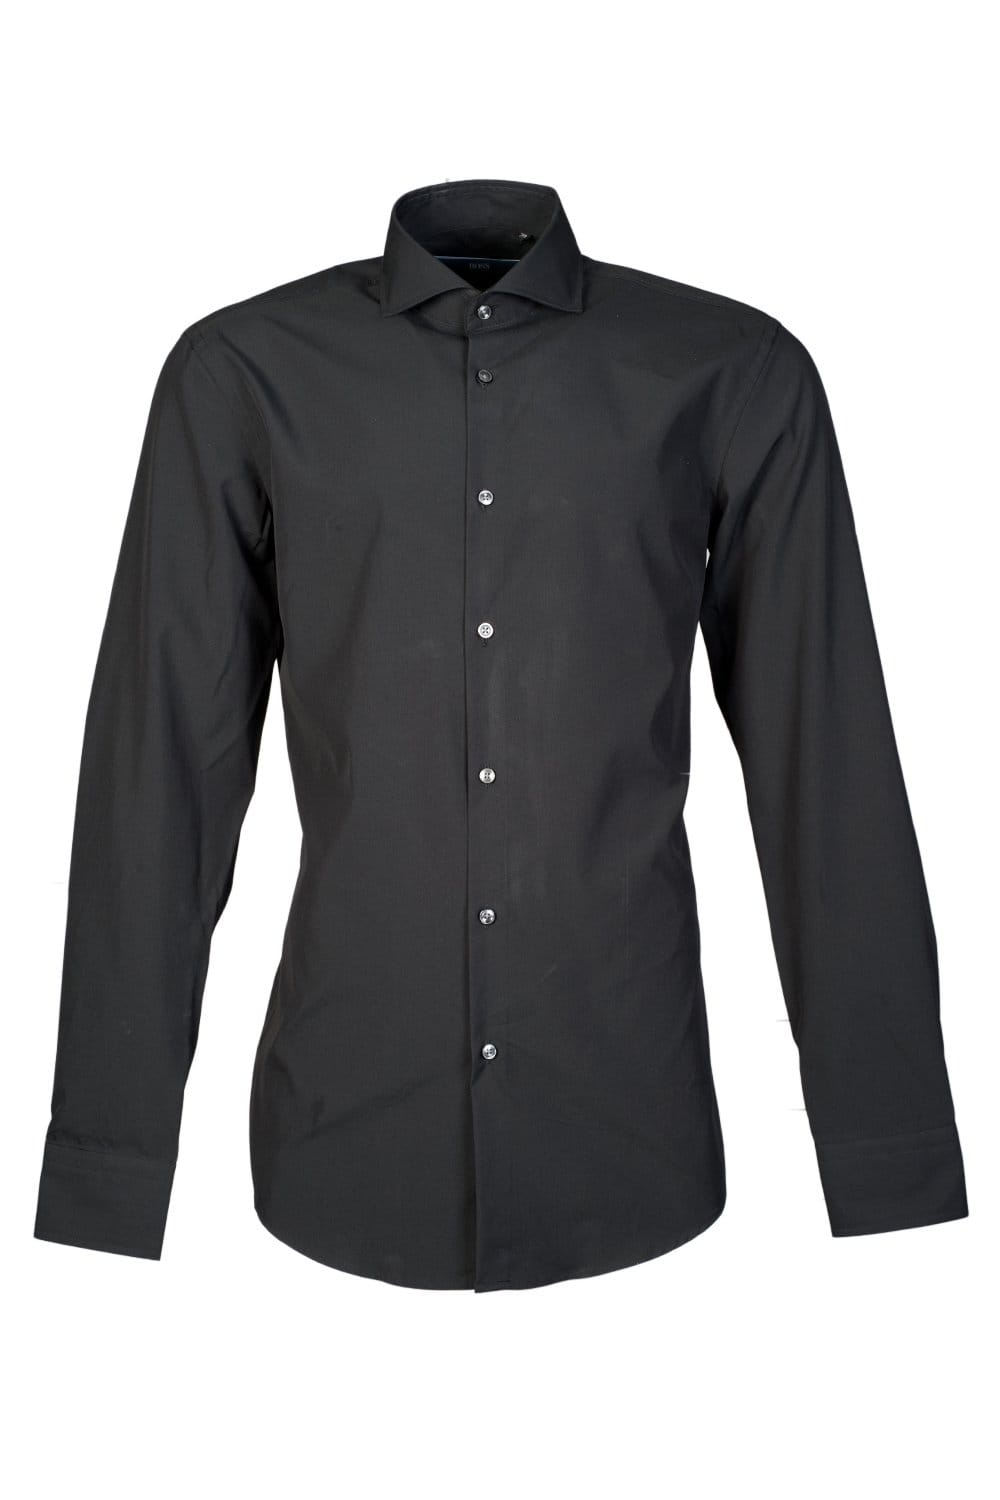 Hugo Boss Stretch Slim Fit Shirt In Black Jason 50251185